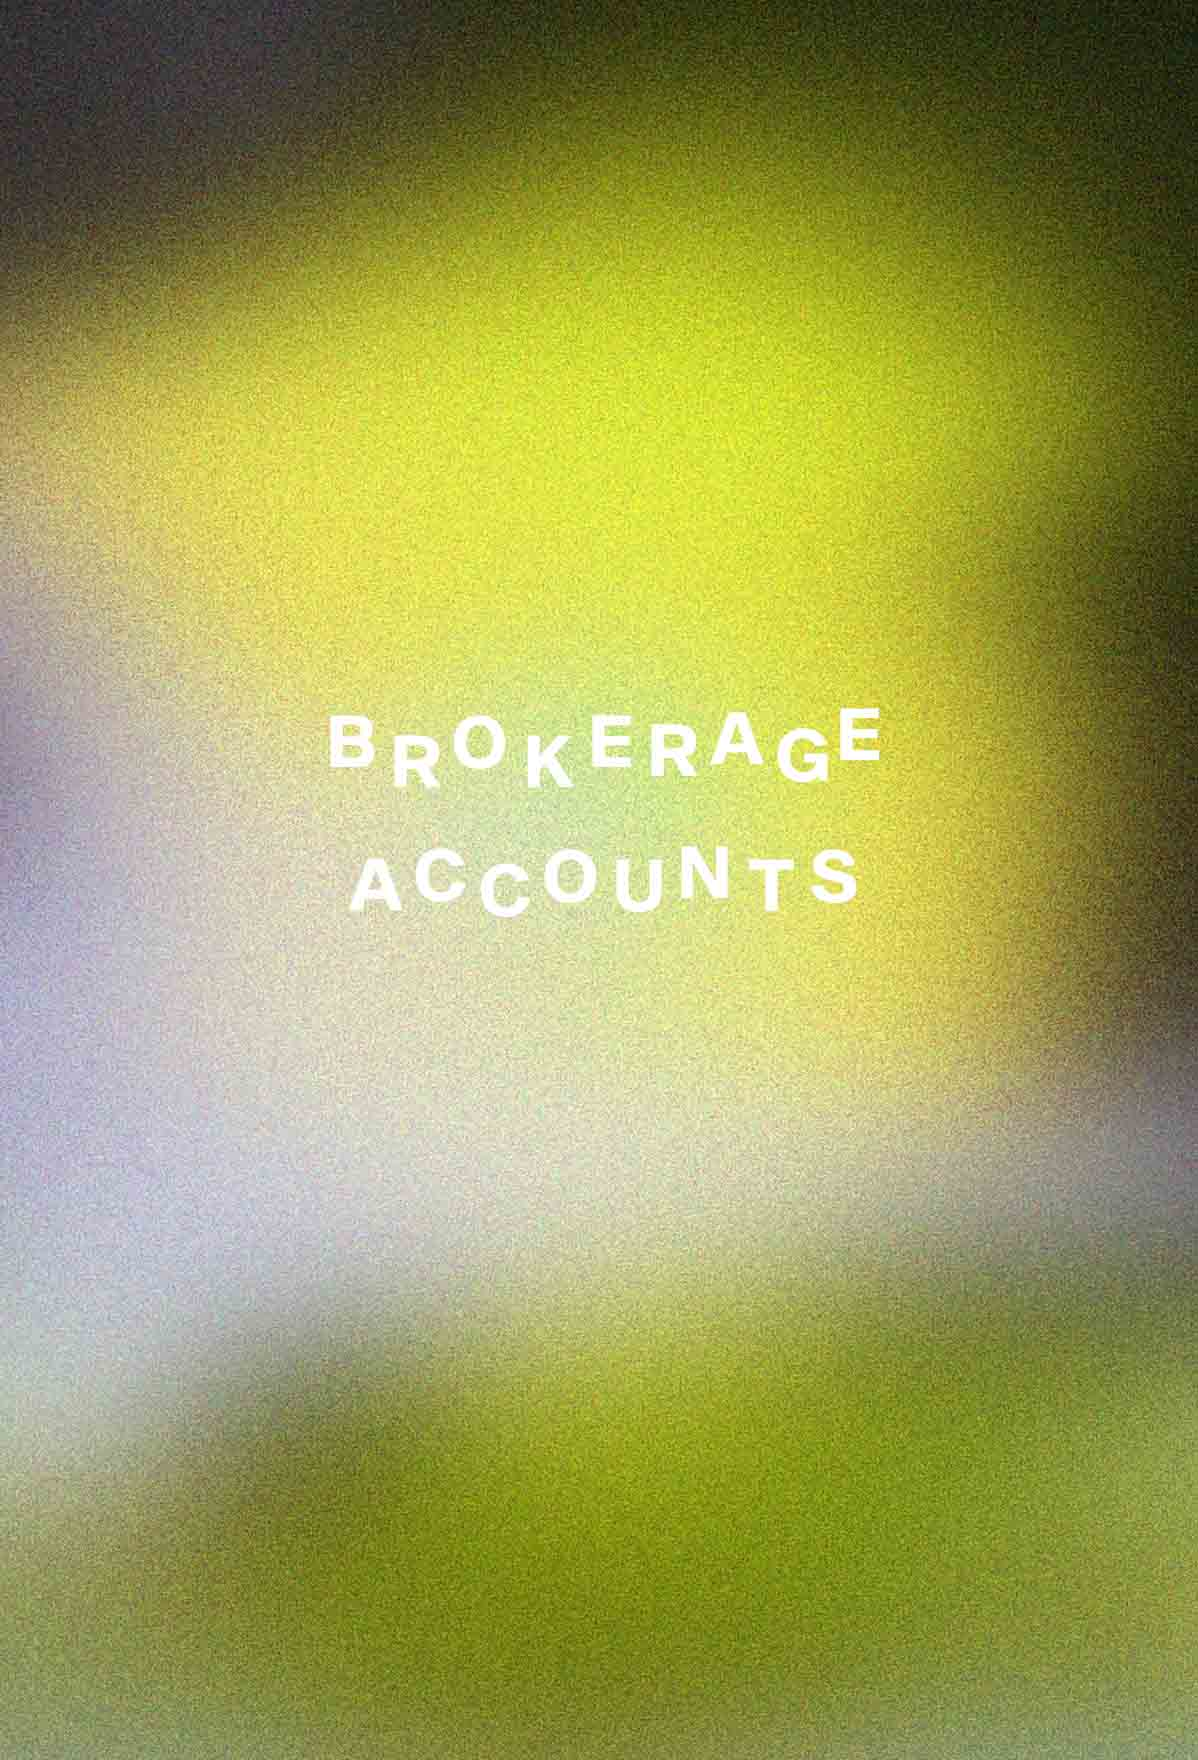 Brokerage Accounts: What They Are and How to Open One